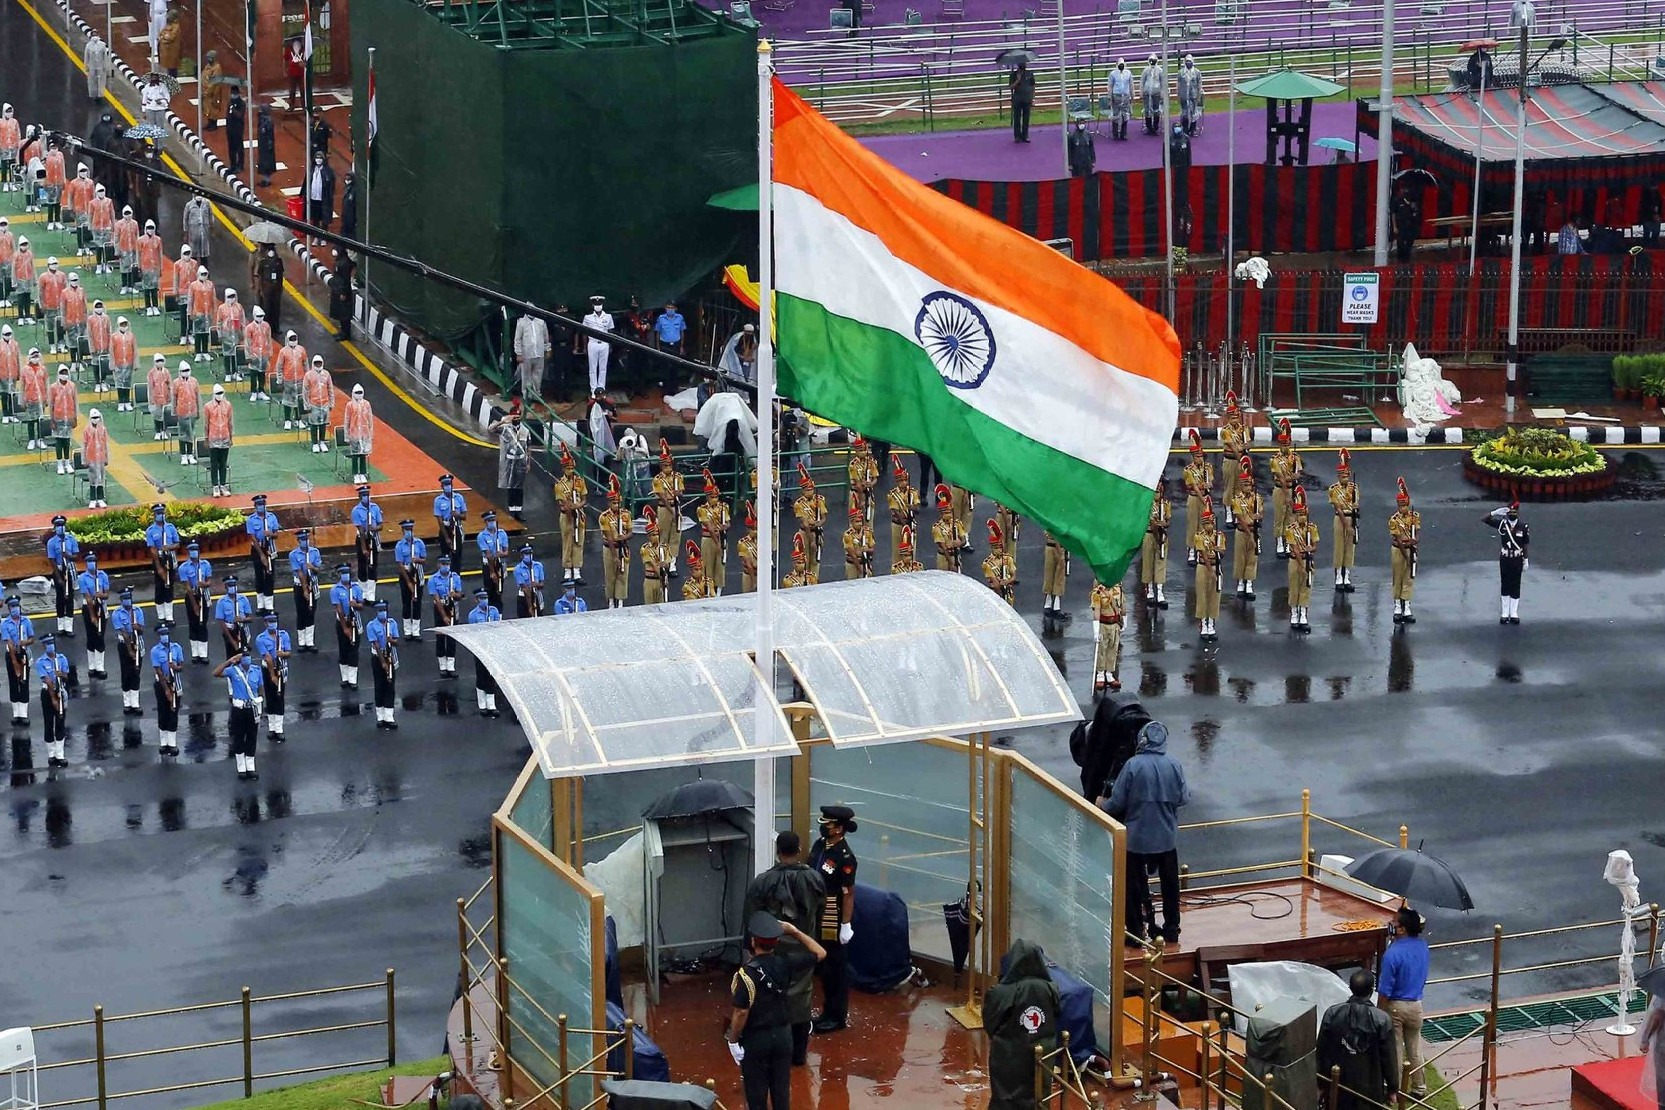 Four thousand more invitees of Independence day celebrations in Delhi